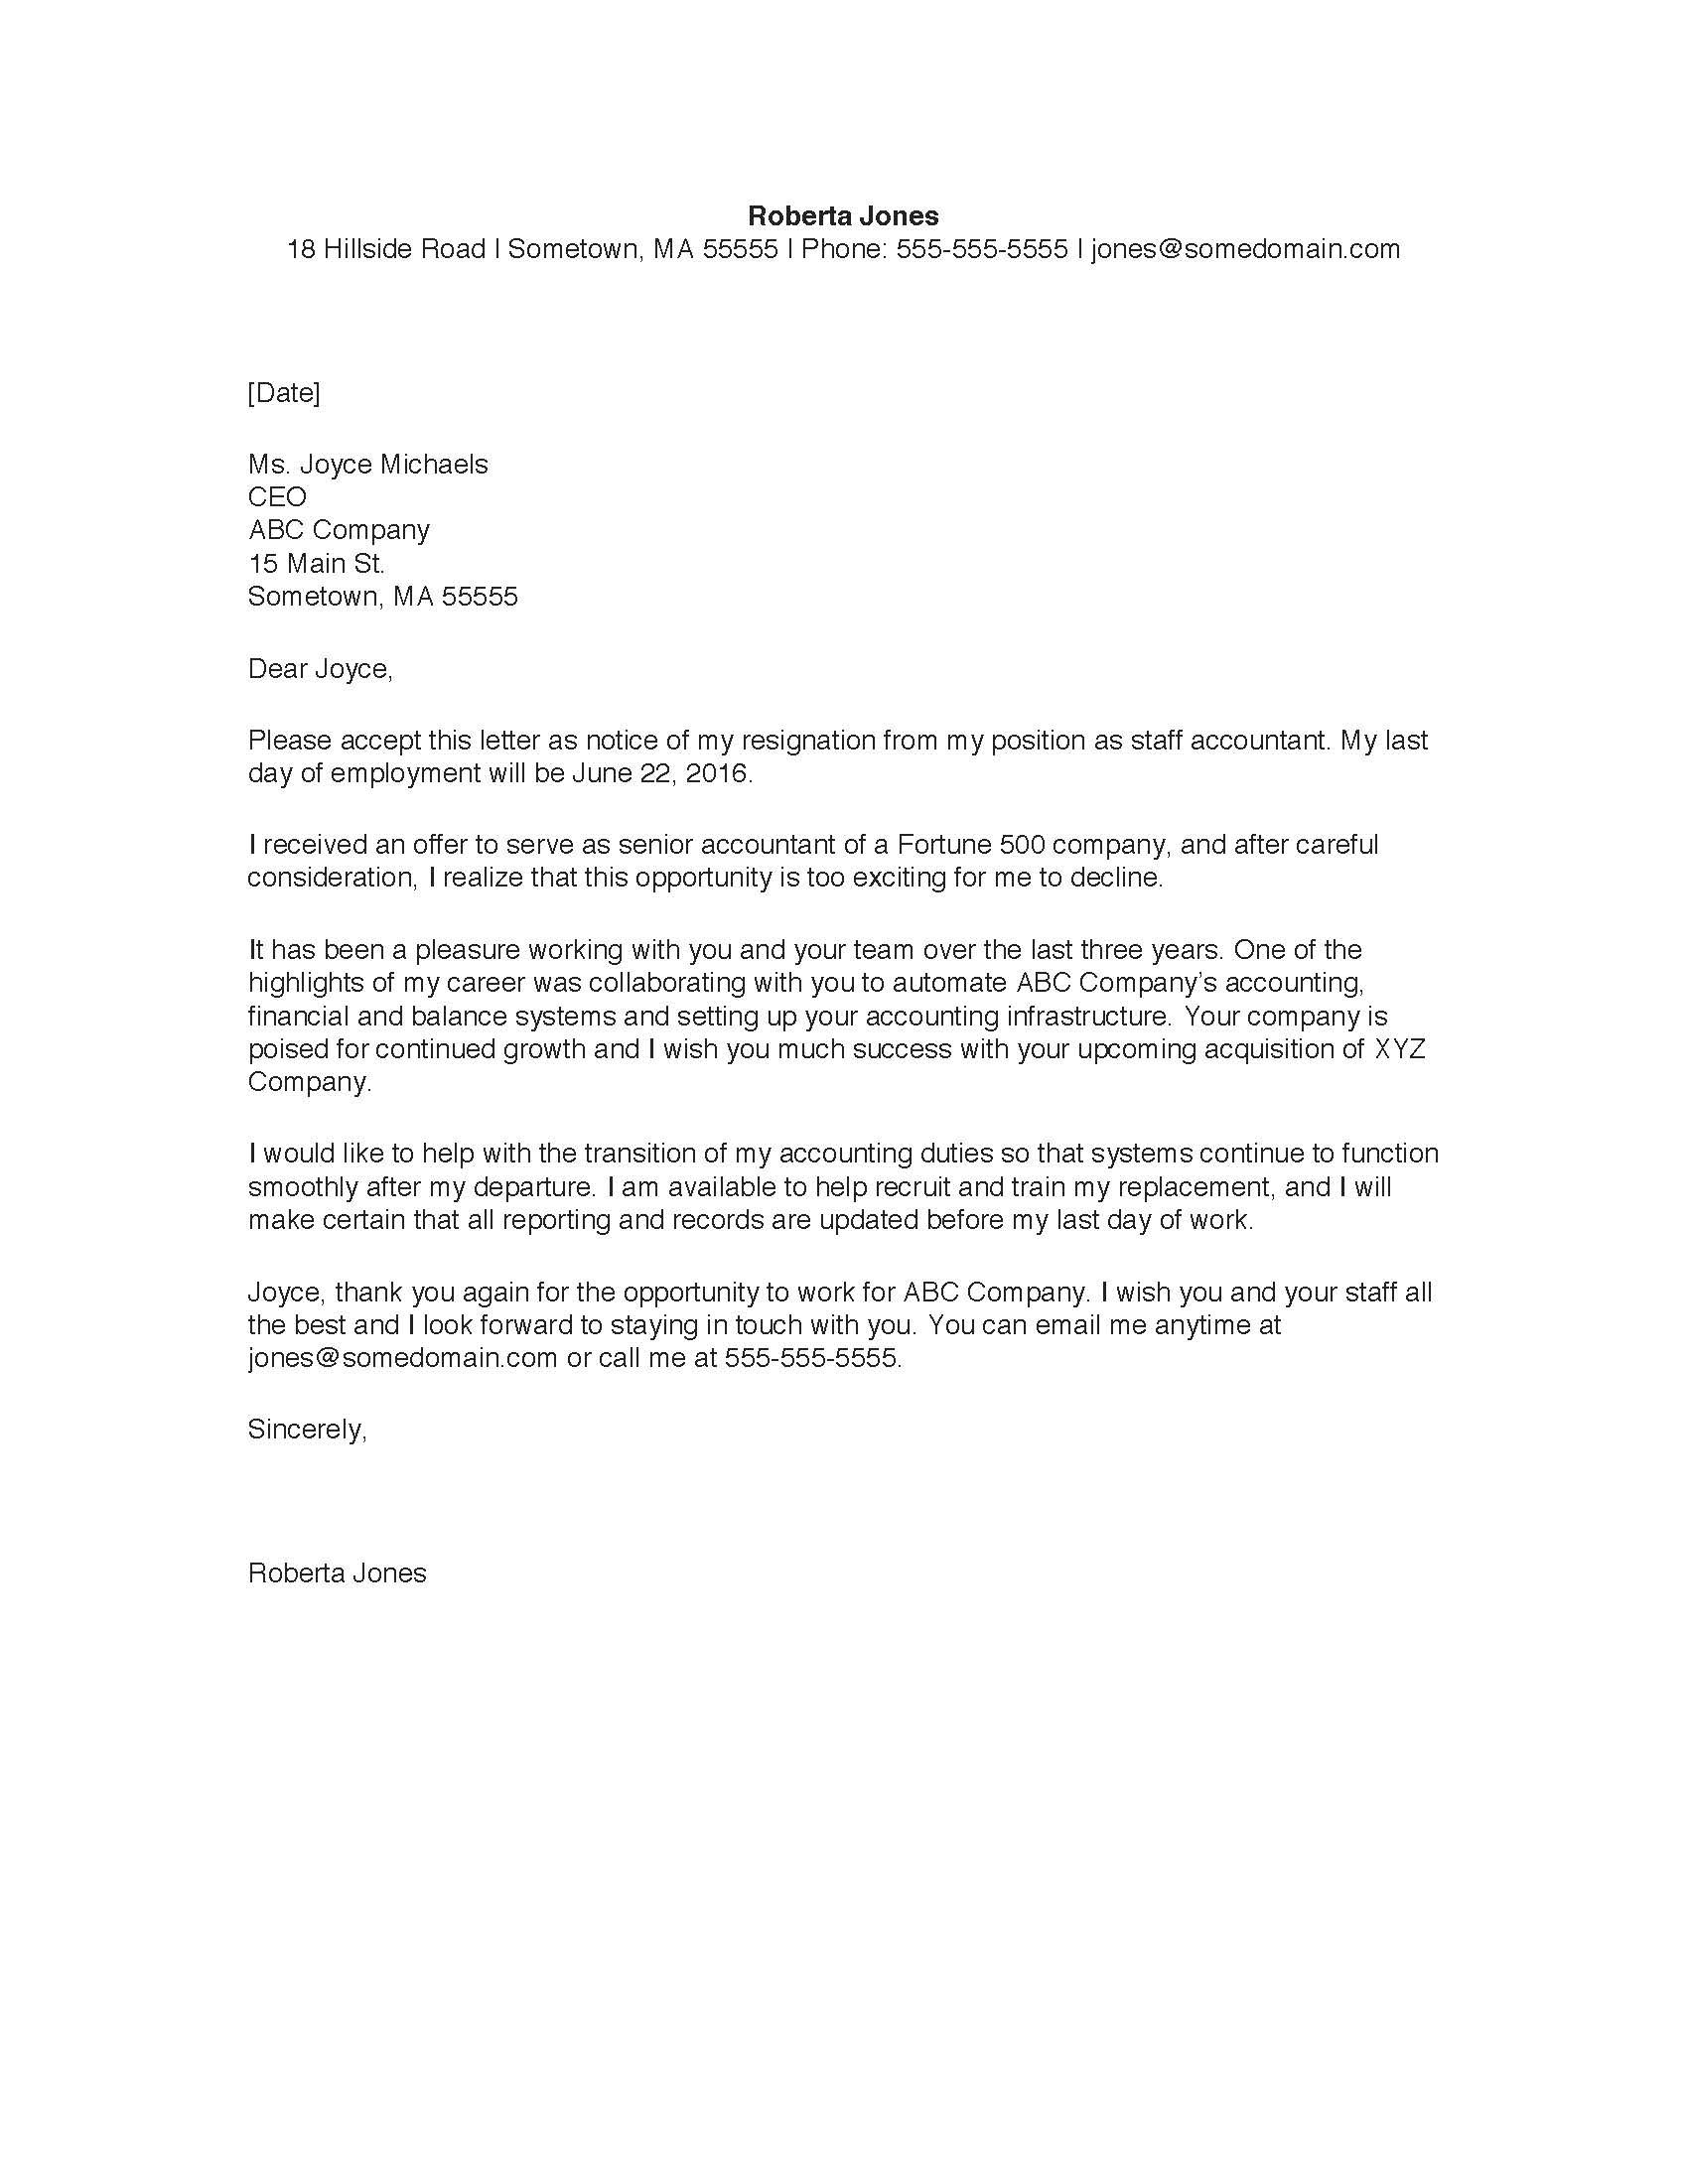 Sample resignation letter resignation letter letter sample and getting ready to leave your job submitting a formal letter of resignation is always good thecheapjerseys Choice Image